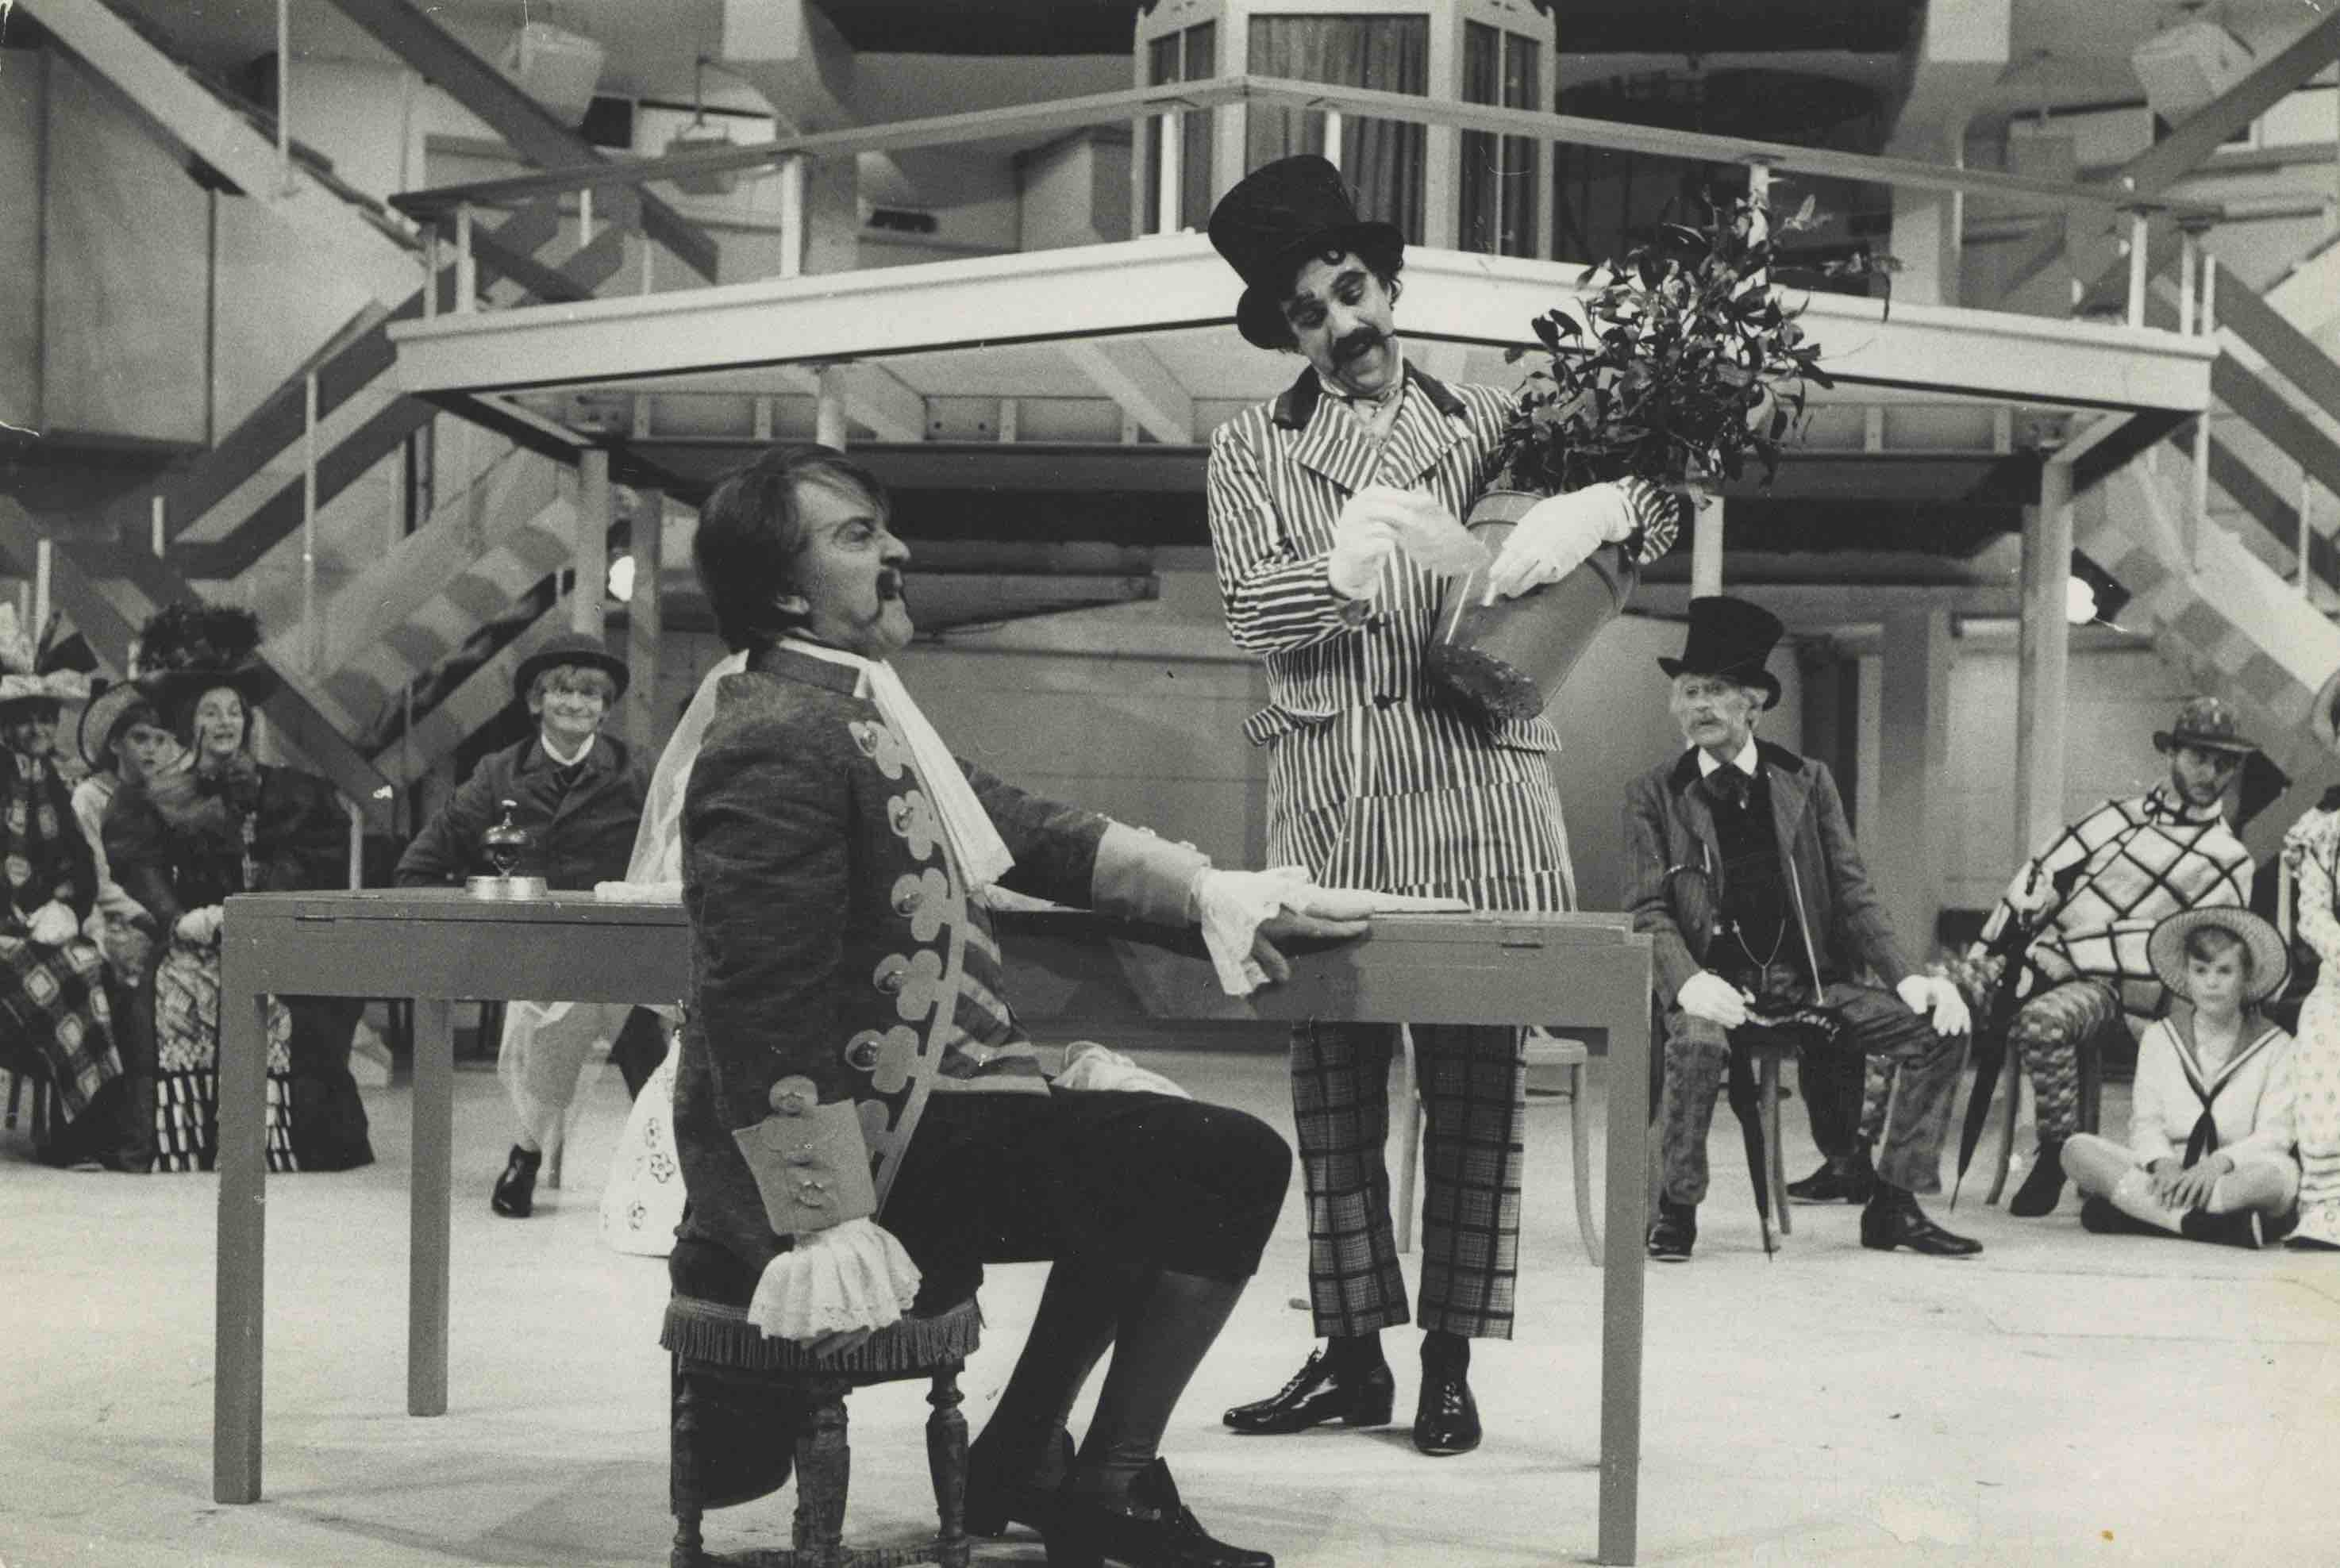 Production photograph - The Italian Straw Hat - David Bird and Michael Aldridge - Photographer Dominic - 1969 - WSRO - Dimensions unknown